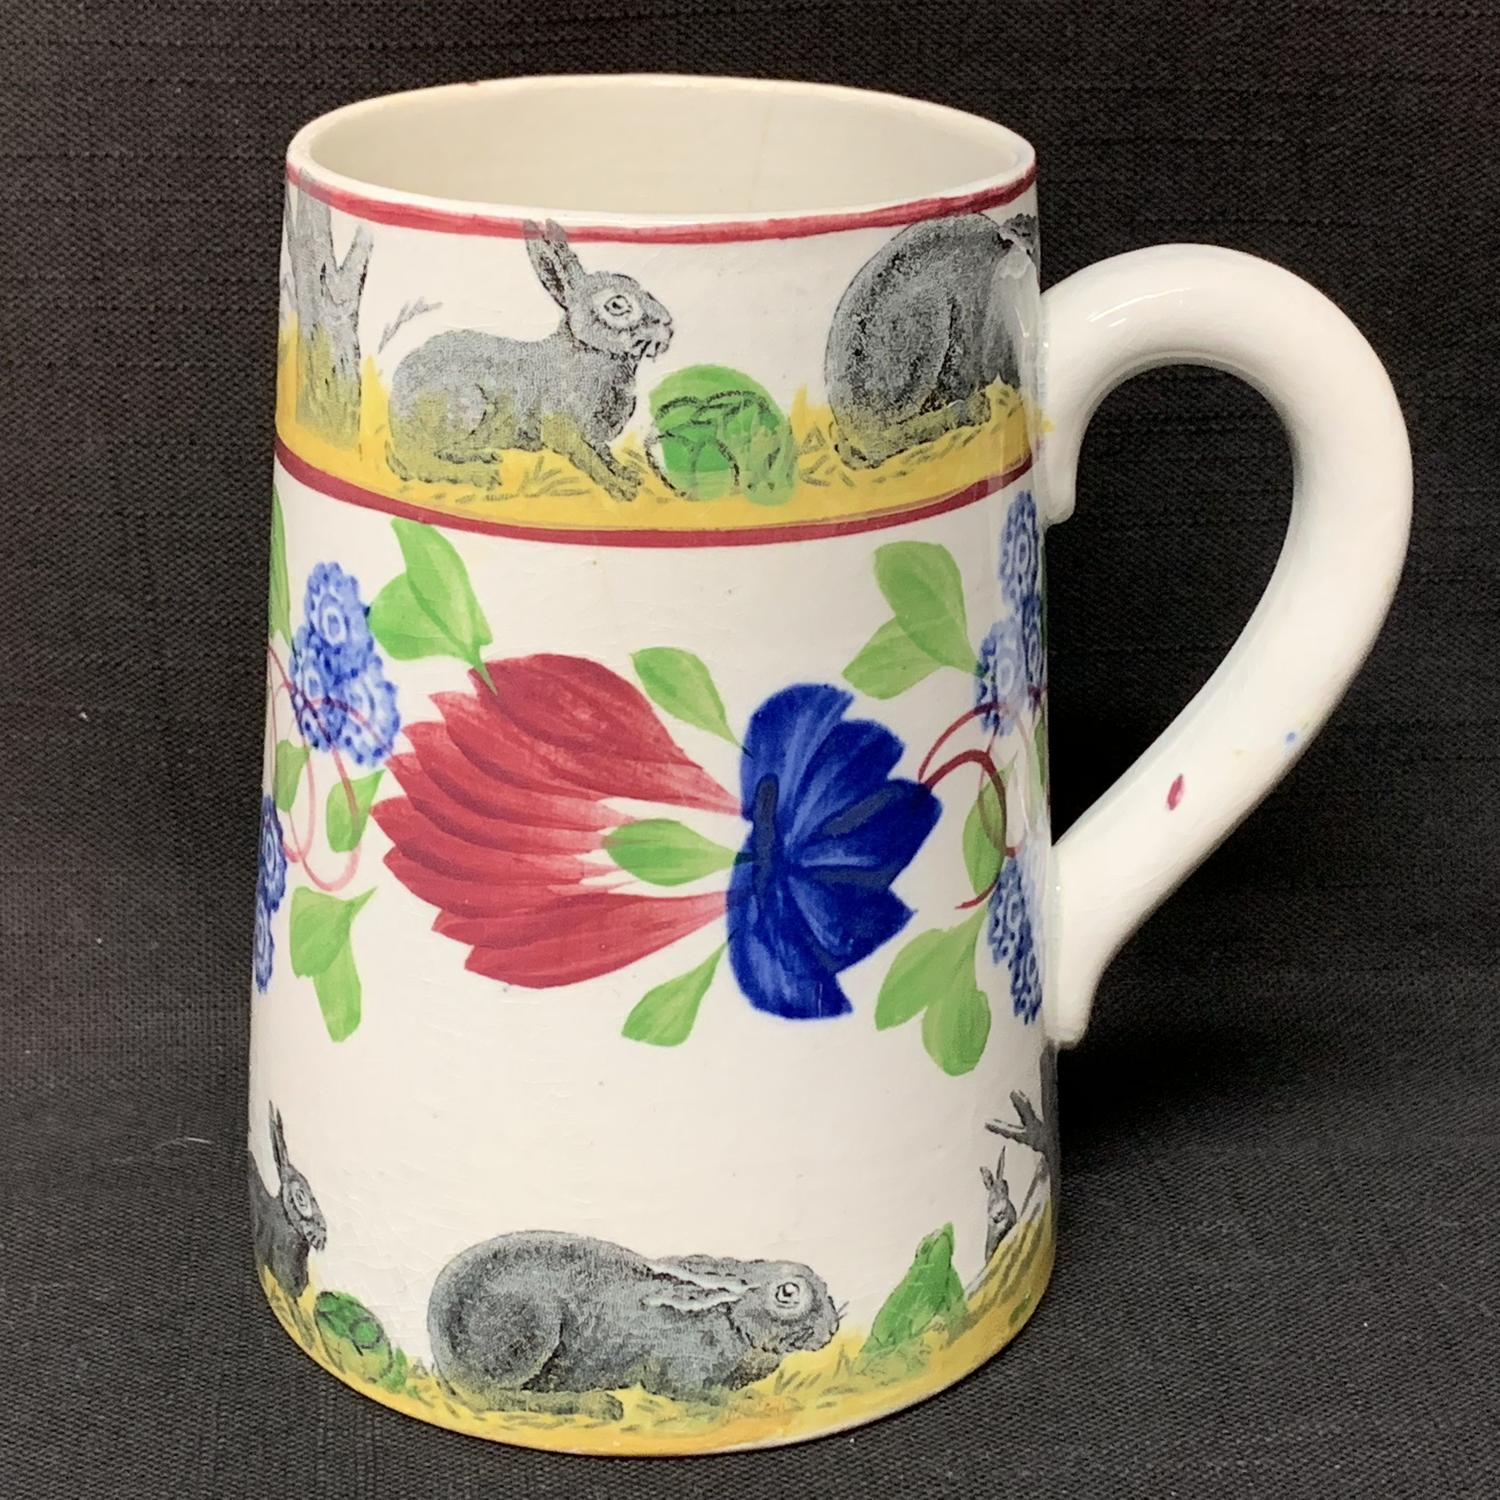 C 1900 ~ Stick Spatter Rabbitware Ironstone Tankard Mug  Virginia Rose